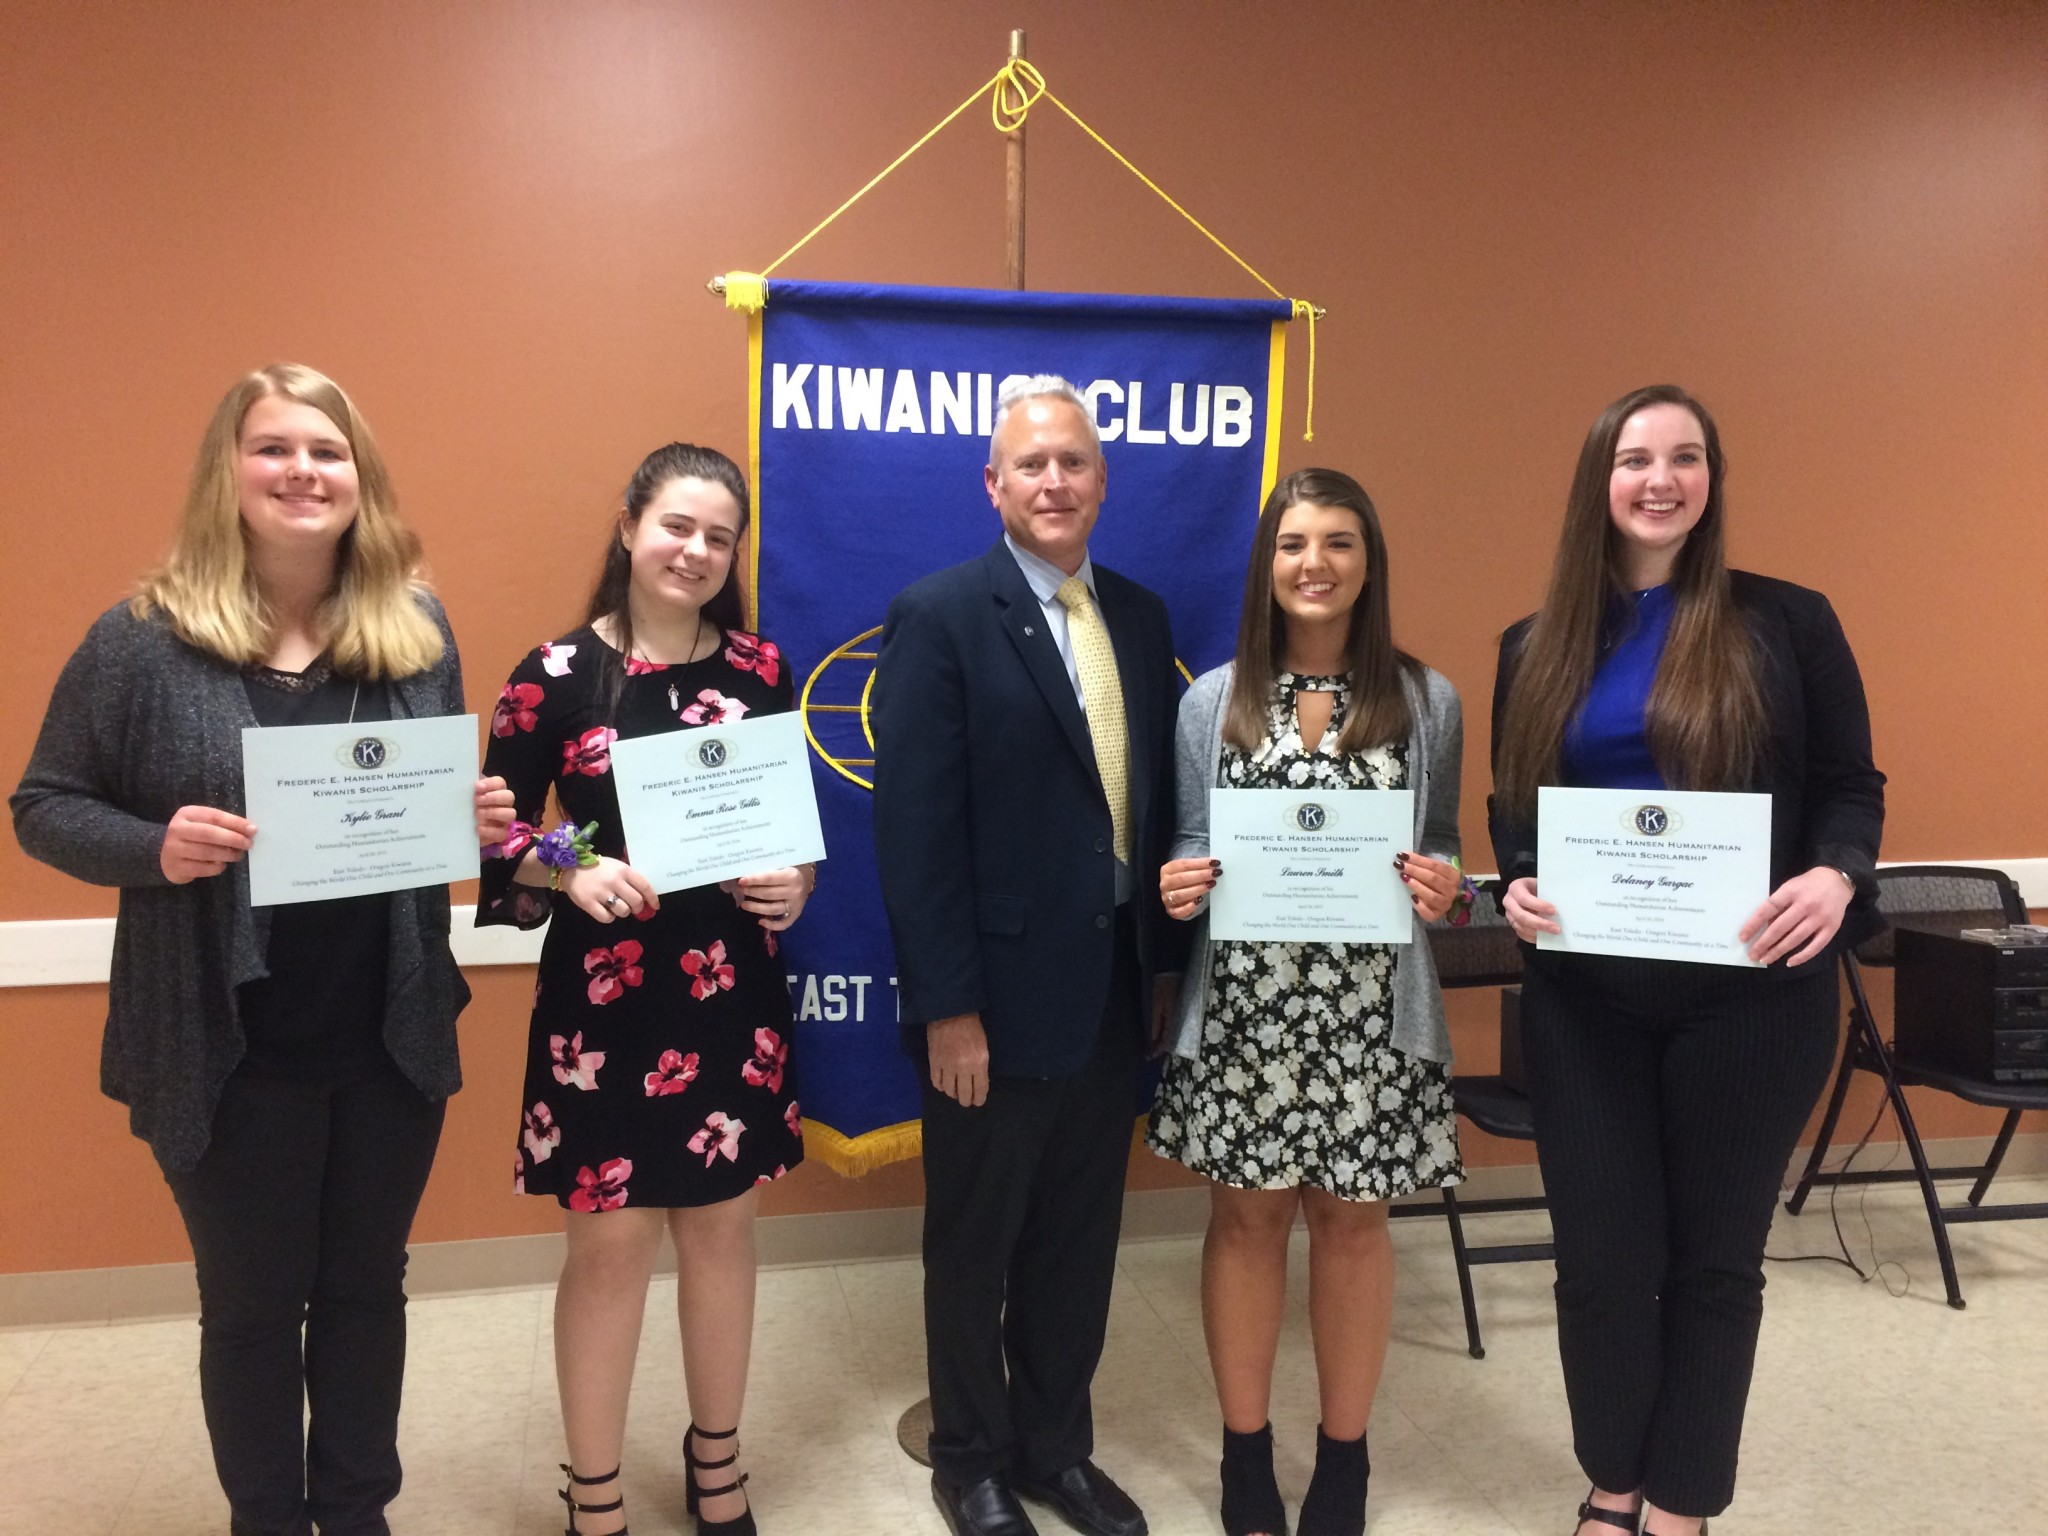 East Toledo/Oregon Kiwanis President David Gigler presented scholarship awards to high school seniors (from left) Kylie Grant, Emma Rose Gillis, Lauren Smith and Delaney Gargac at the 68th Anniversary Charter Dinner. (Submitted photo)